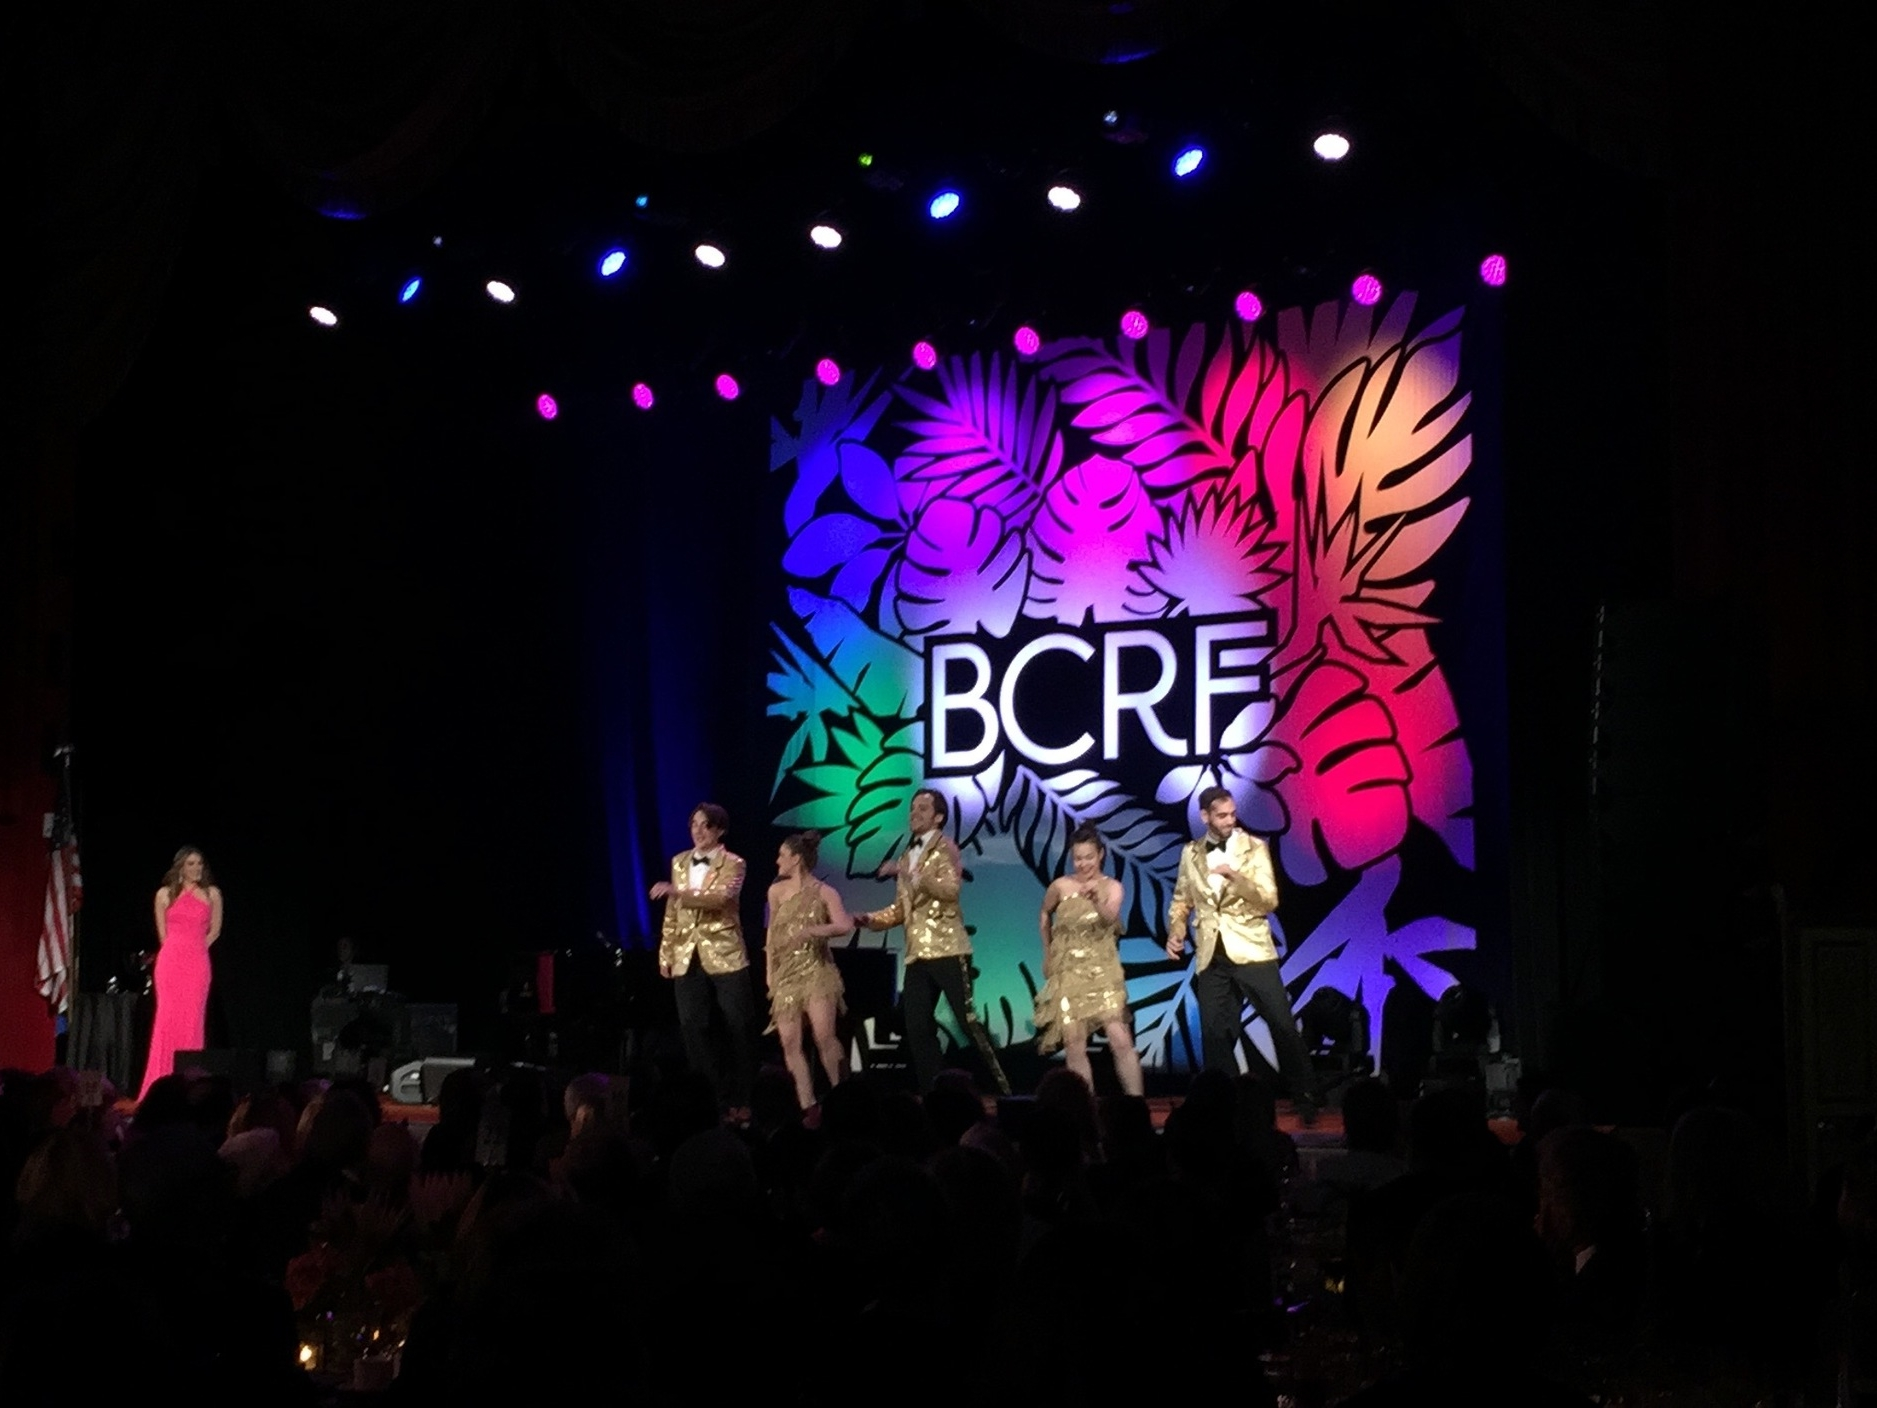 BCRF NYC 2016  Client: Breast Cancer Research Foundation & Rafanelli Events Services: Audience interaction, full choreographed performance